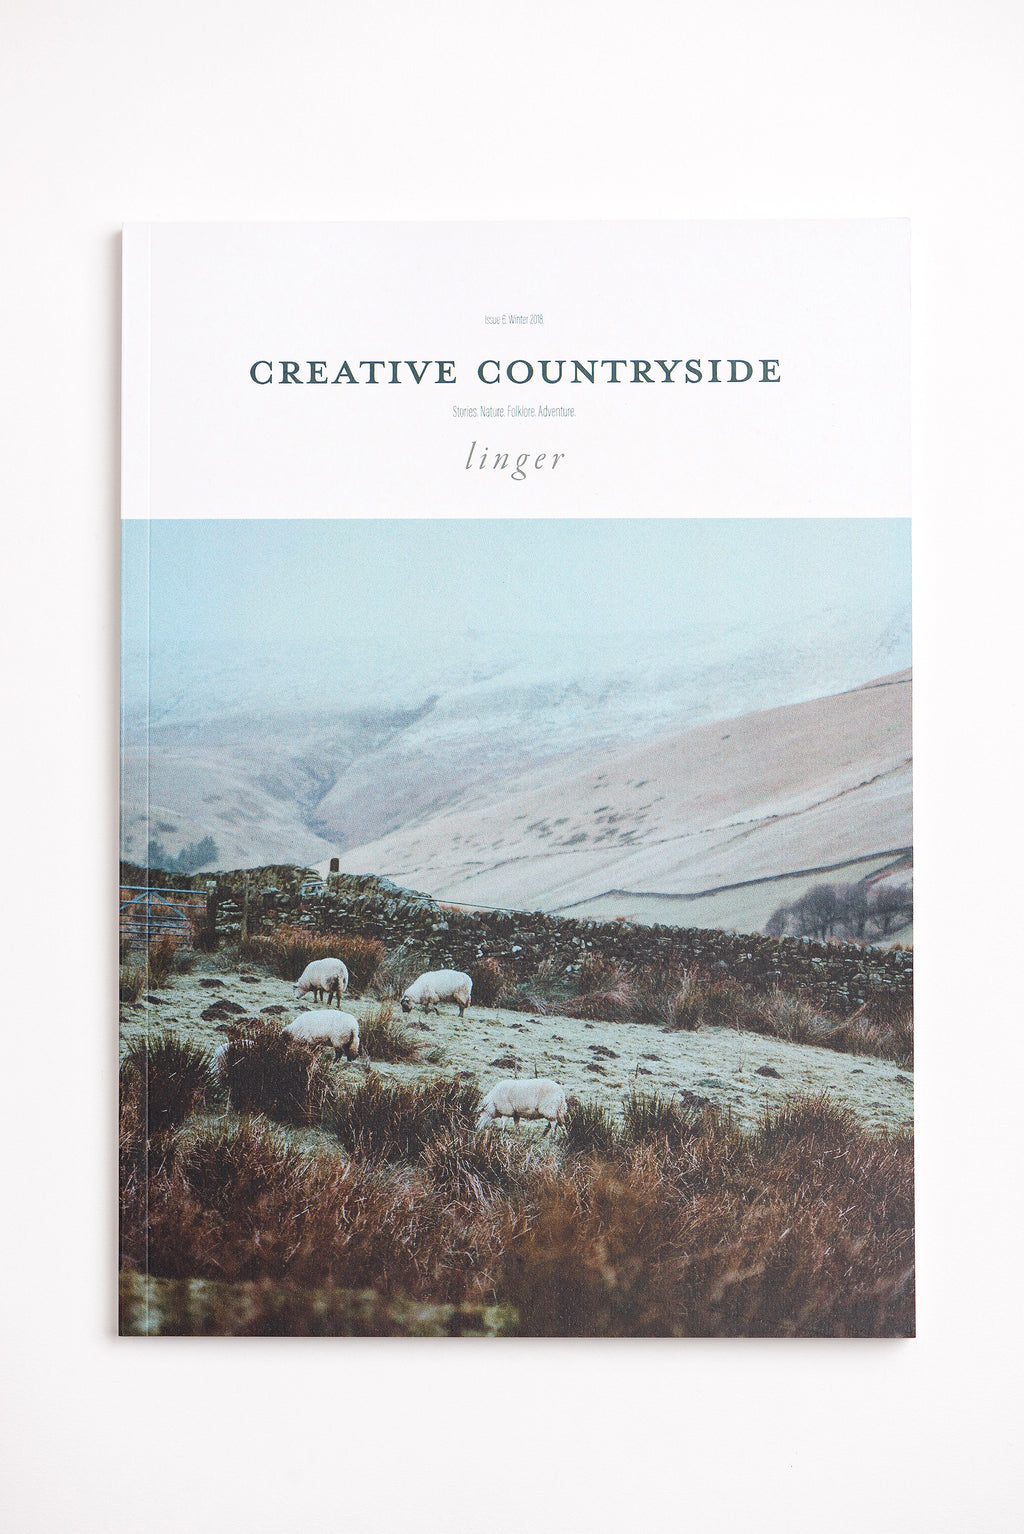 Creative Countryside